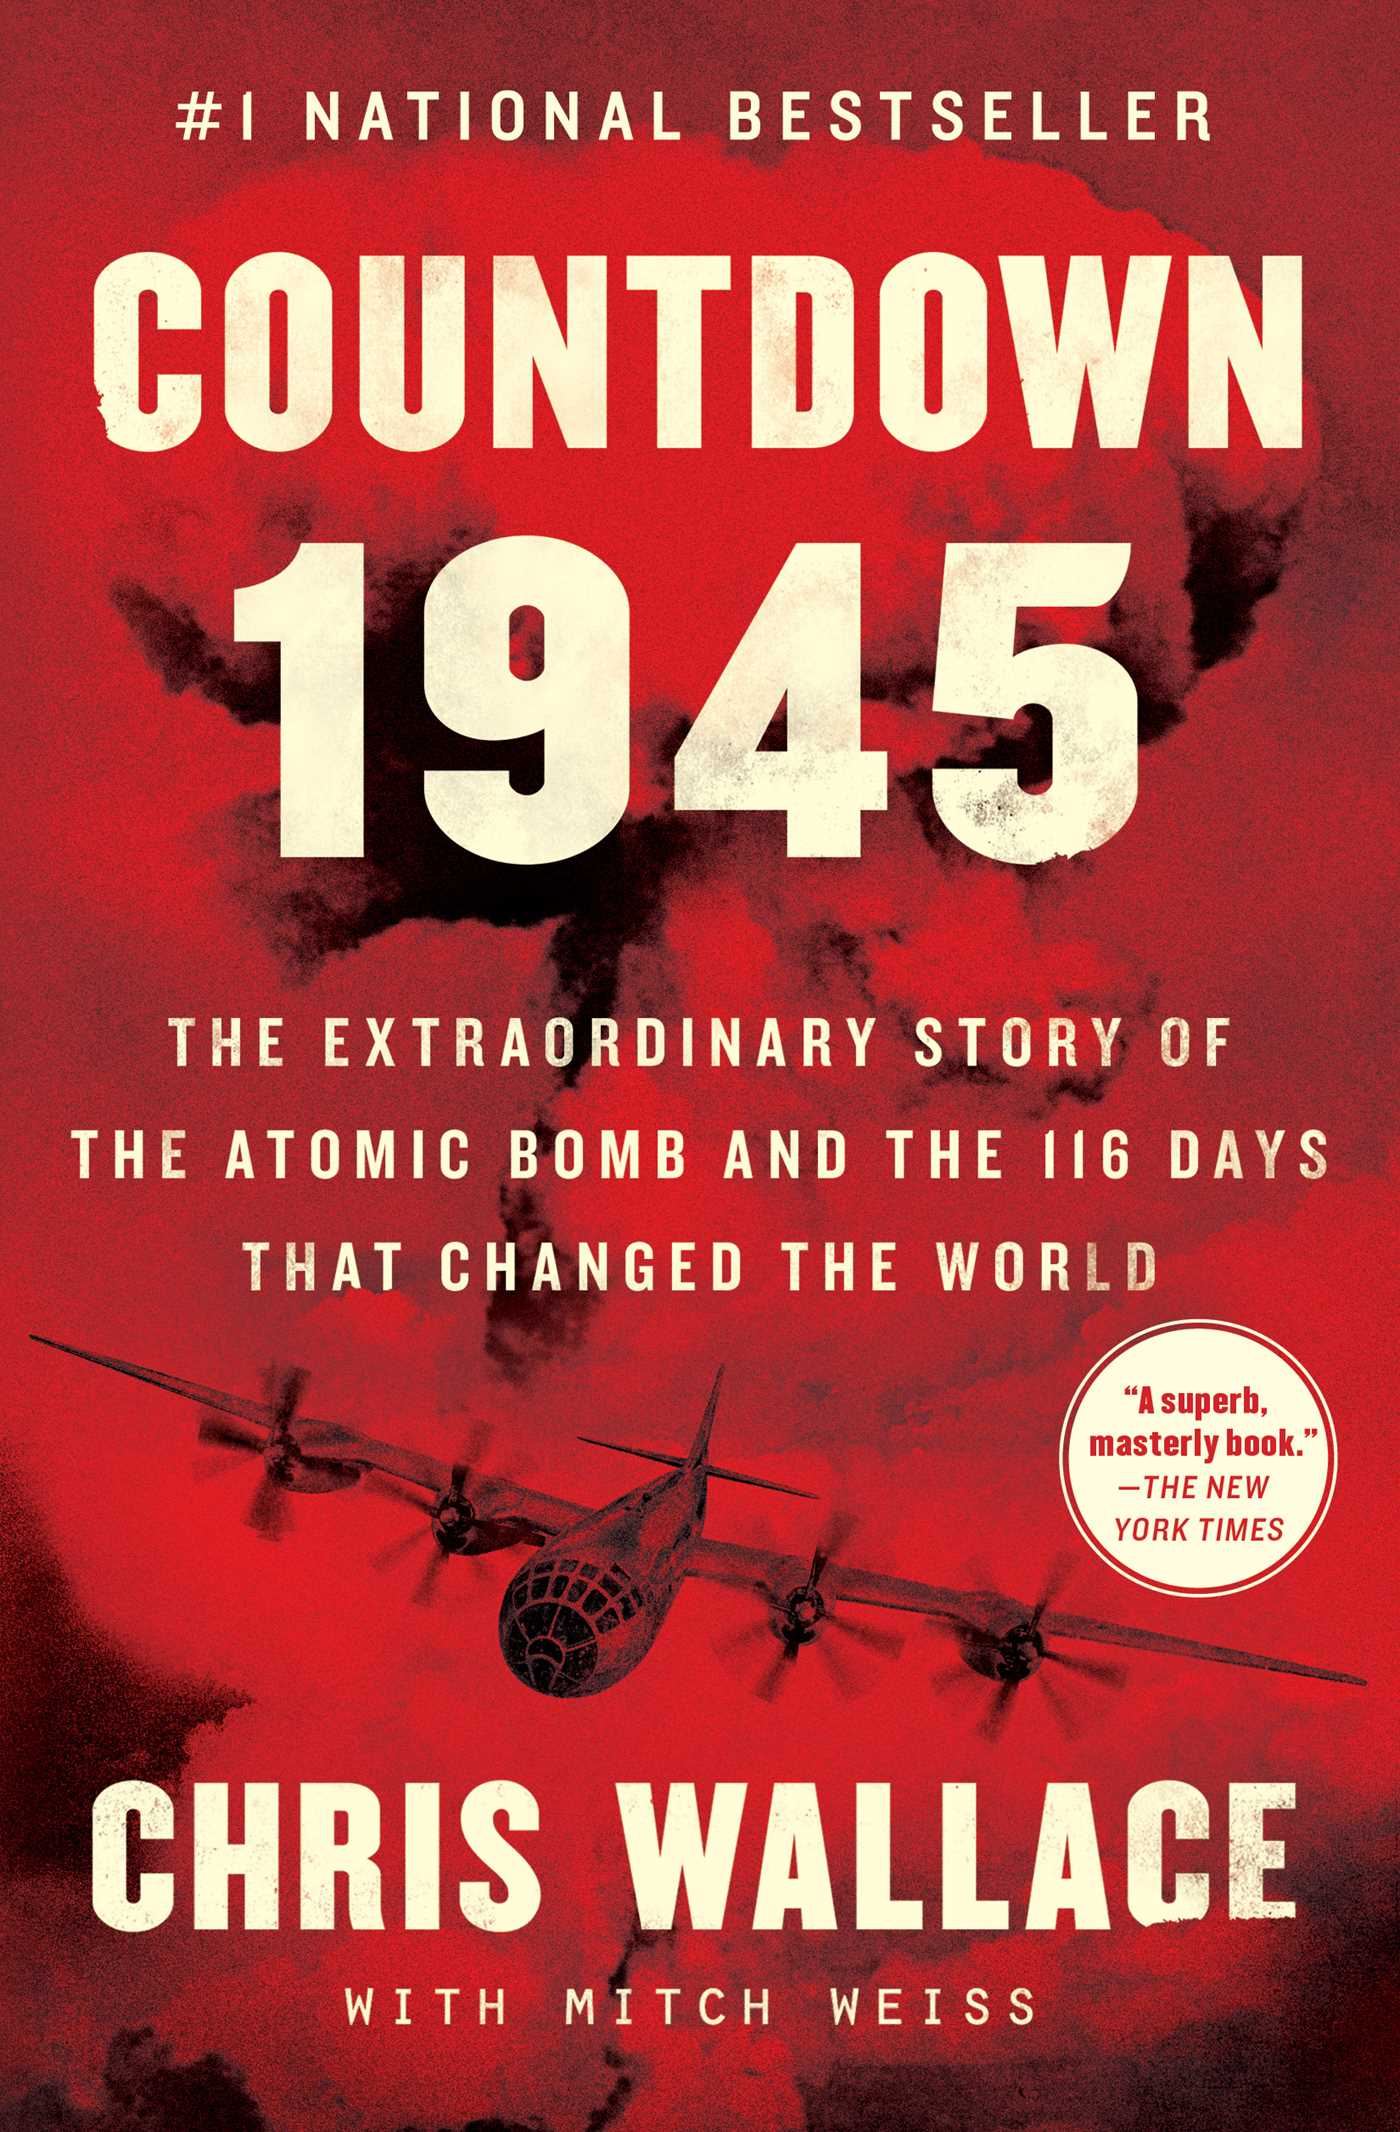 Countdown 1945 The Extraordinary Story of the Atomic Bomb and the 116 Days That Changed the World